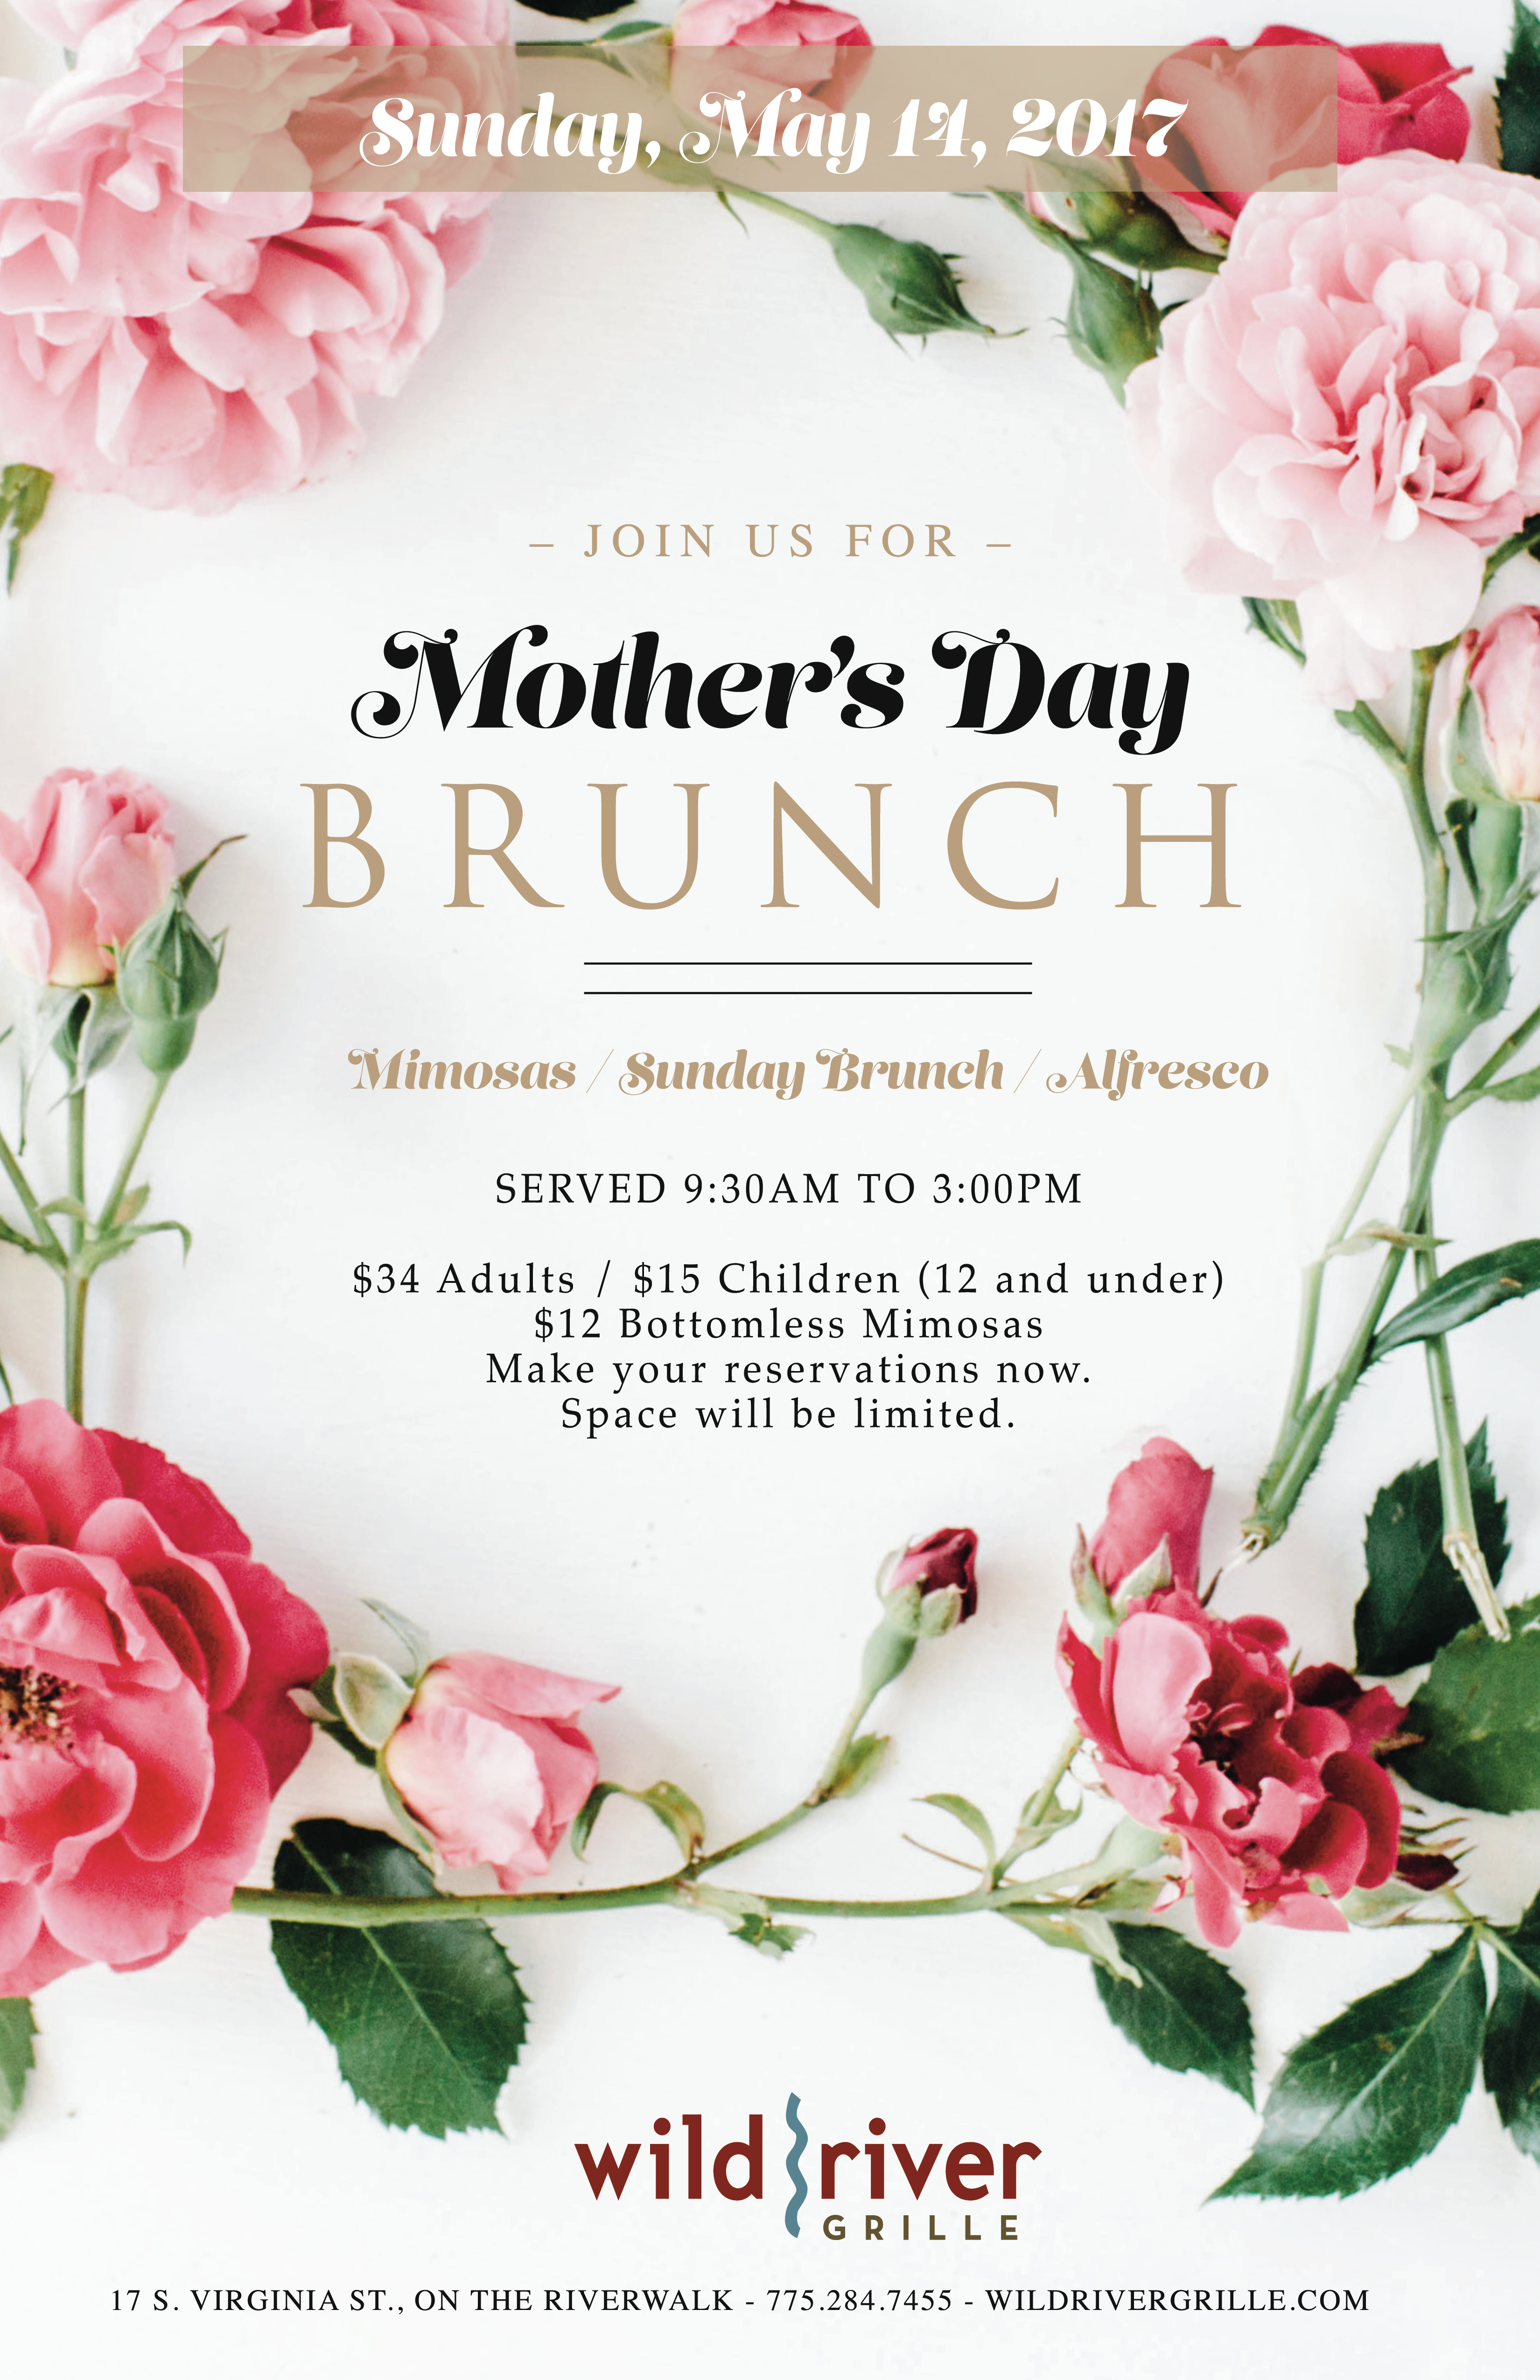 Mother's Day Brunch - Wild River Grille